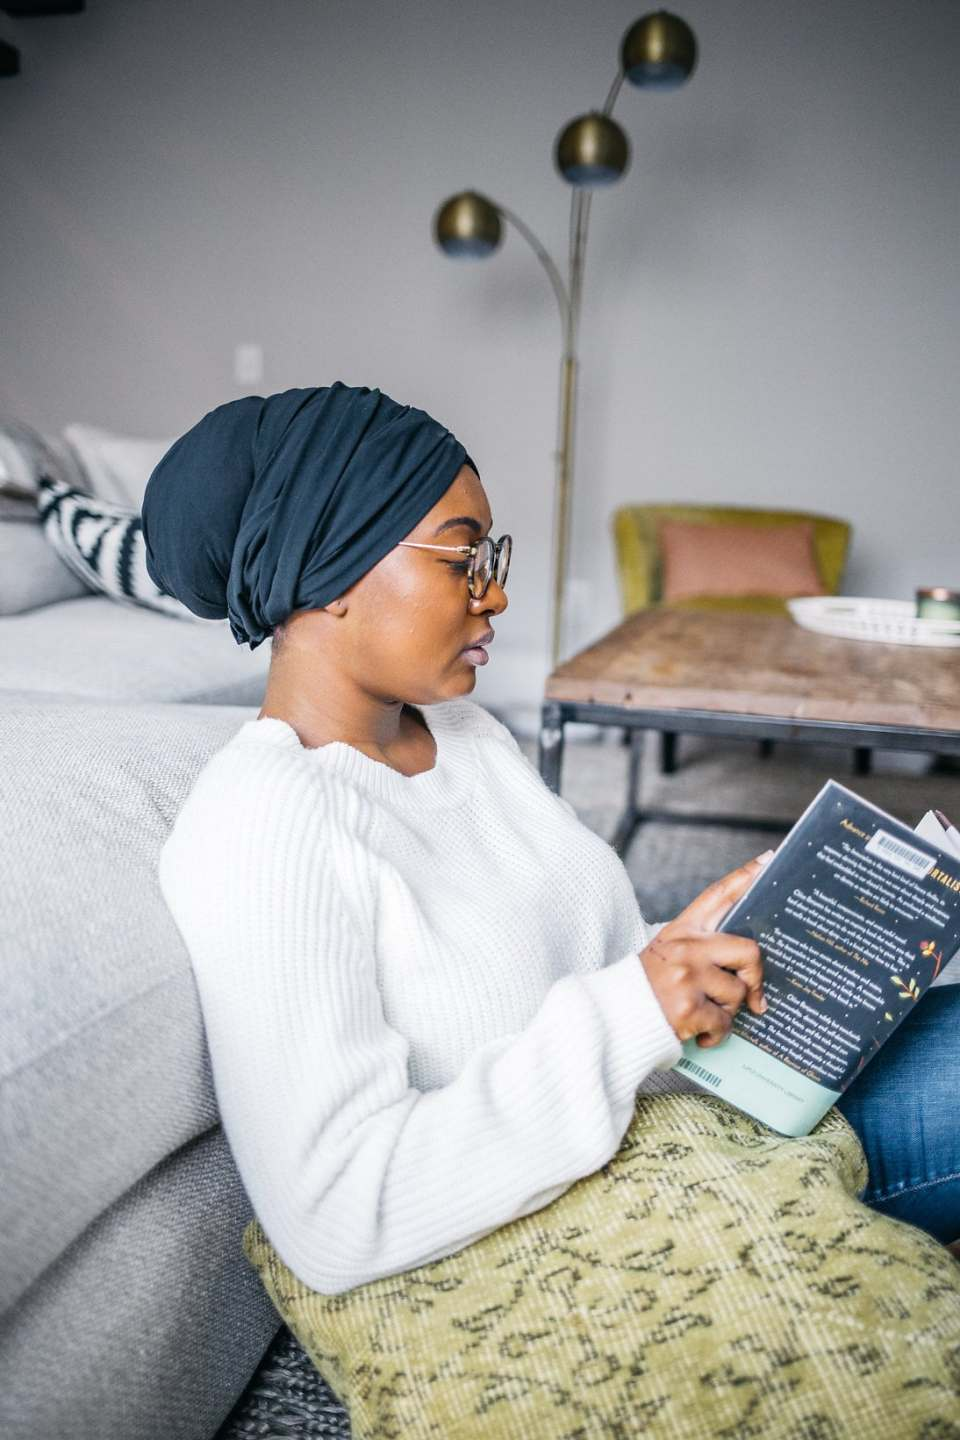 Sitting on a couch reading a book - Self-care